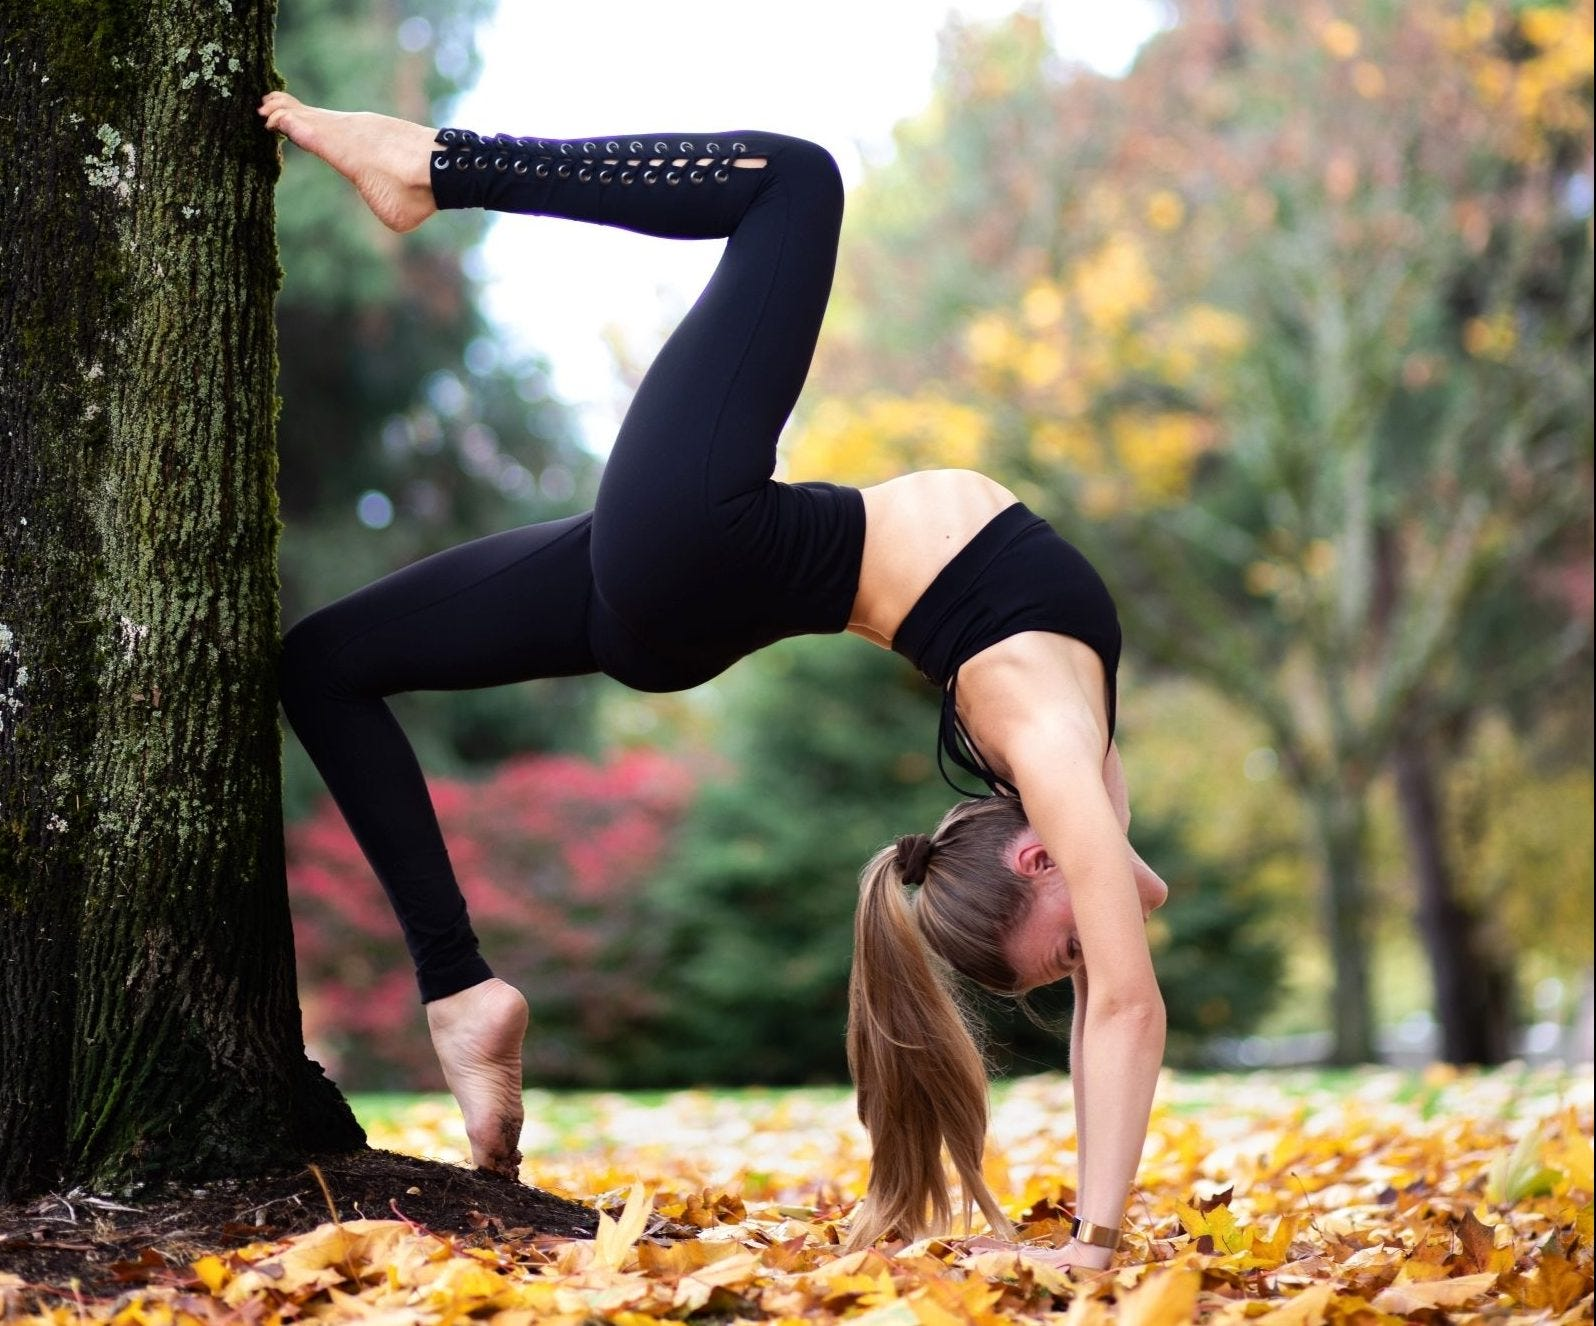 Woman doing a backbend in the park during autumn